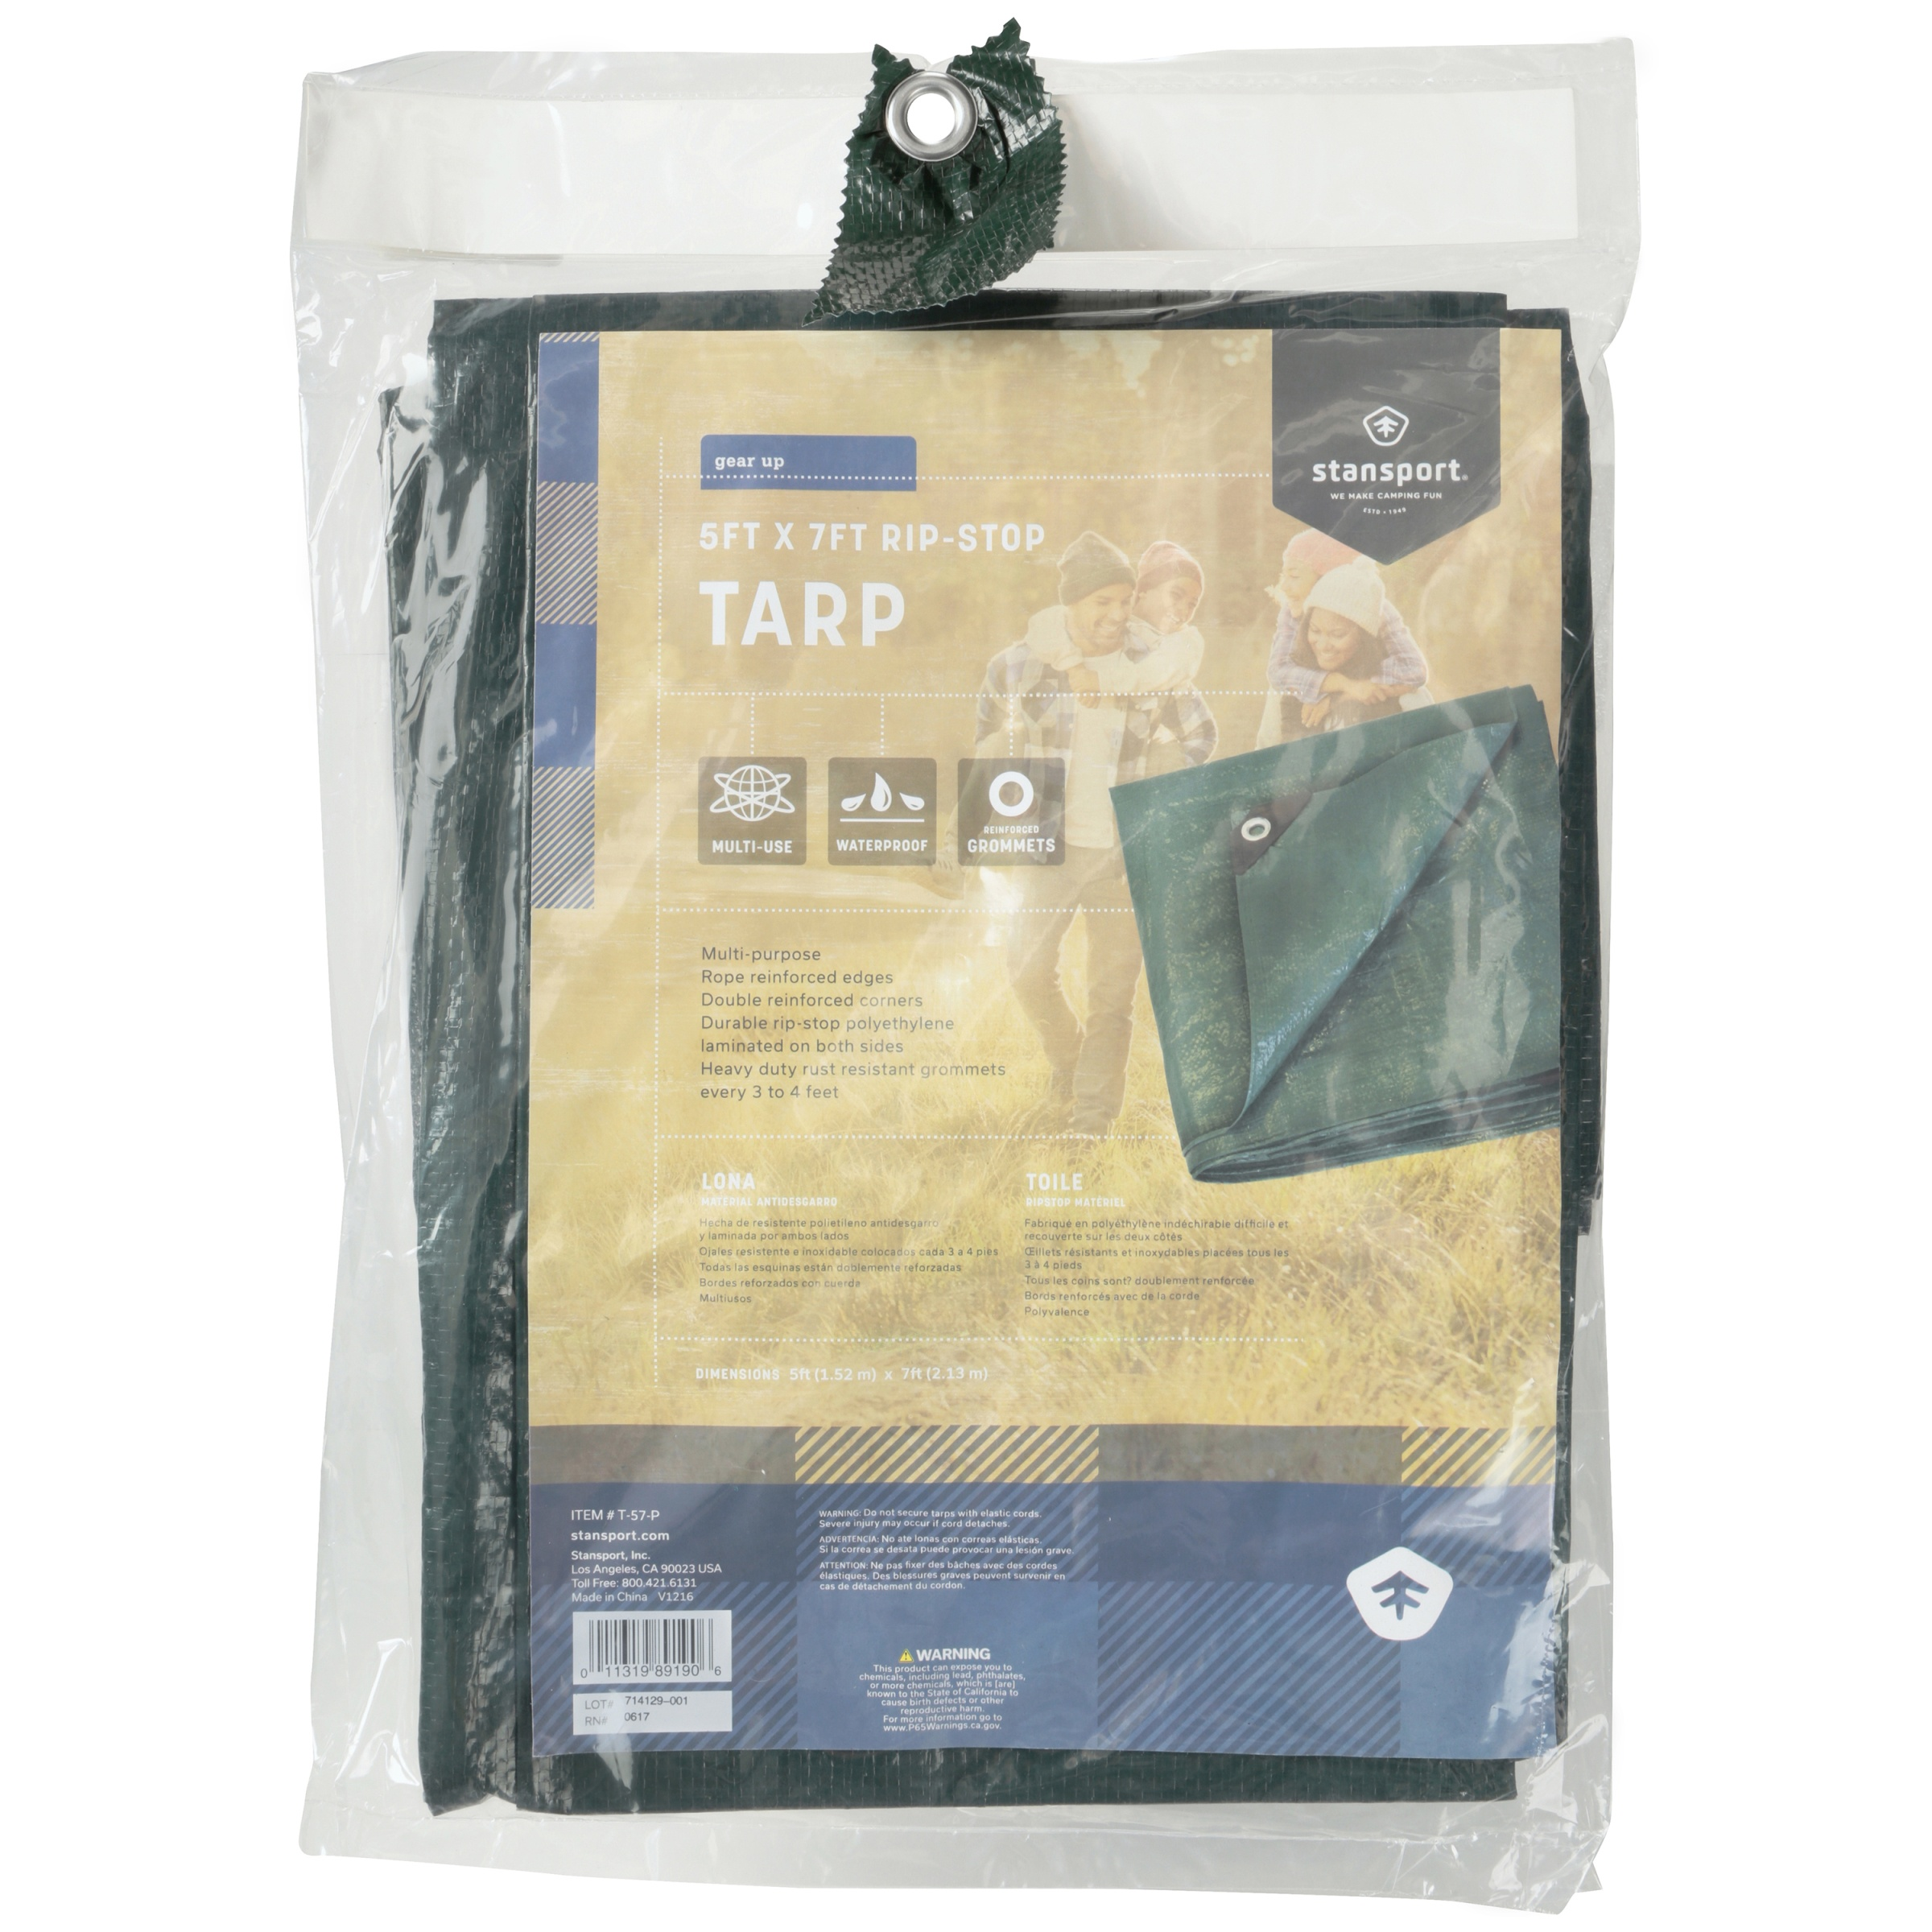 stansporta gear up 5 ft x 7 ft rip stop tarp walmart com